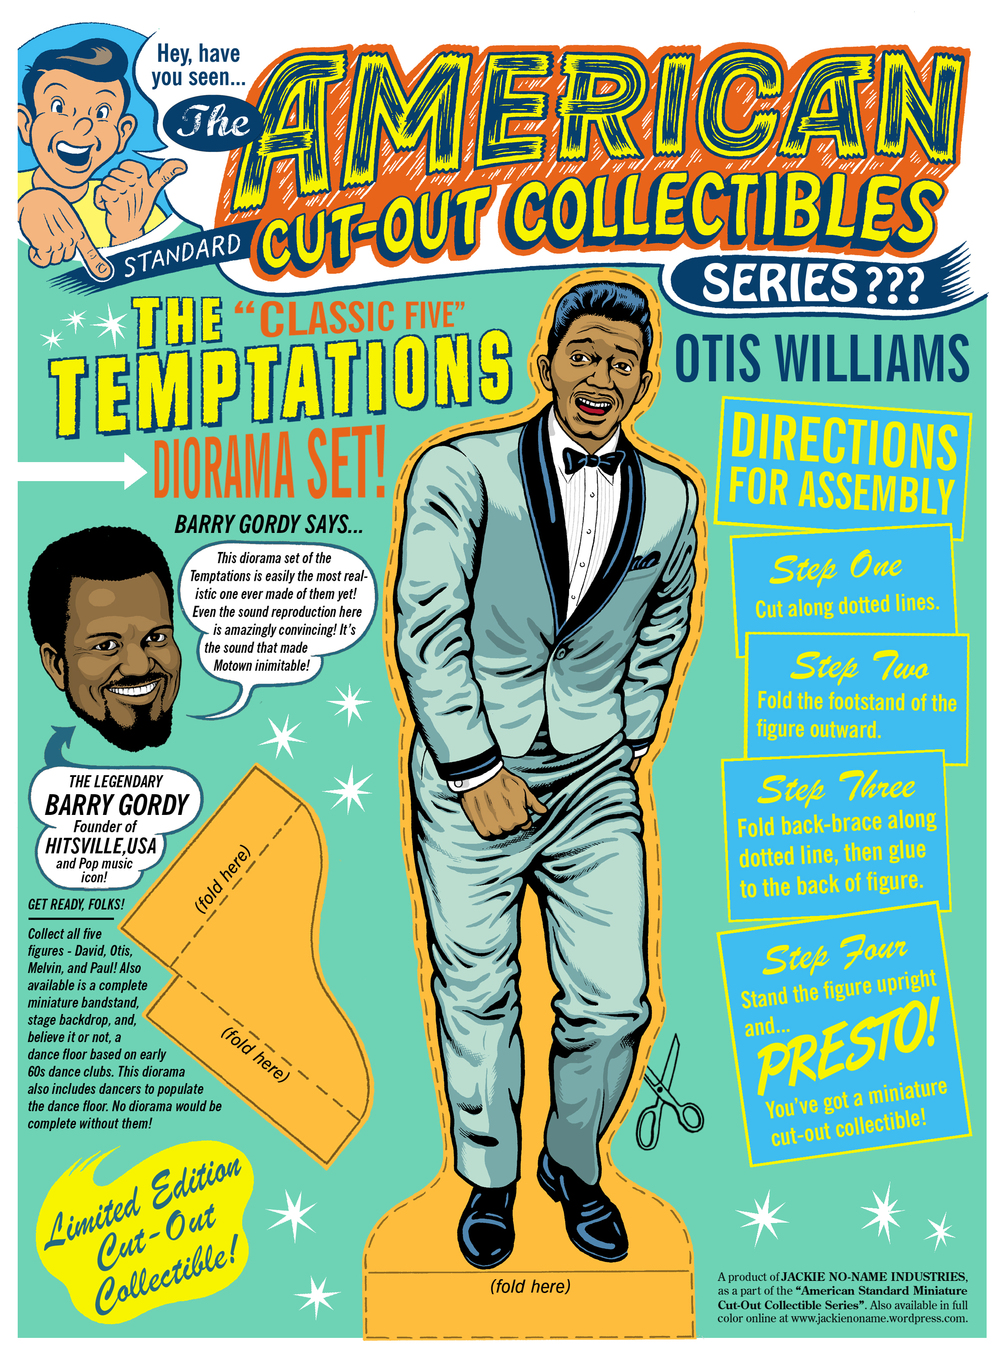 04 otis williams.jpg